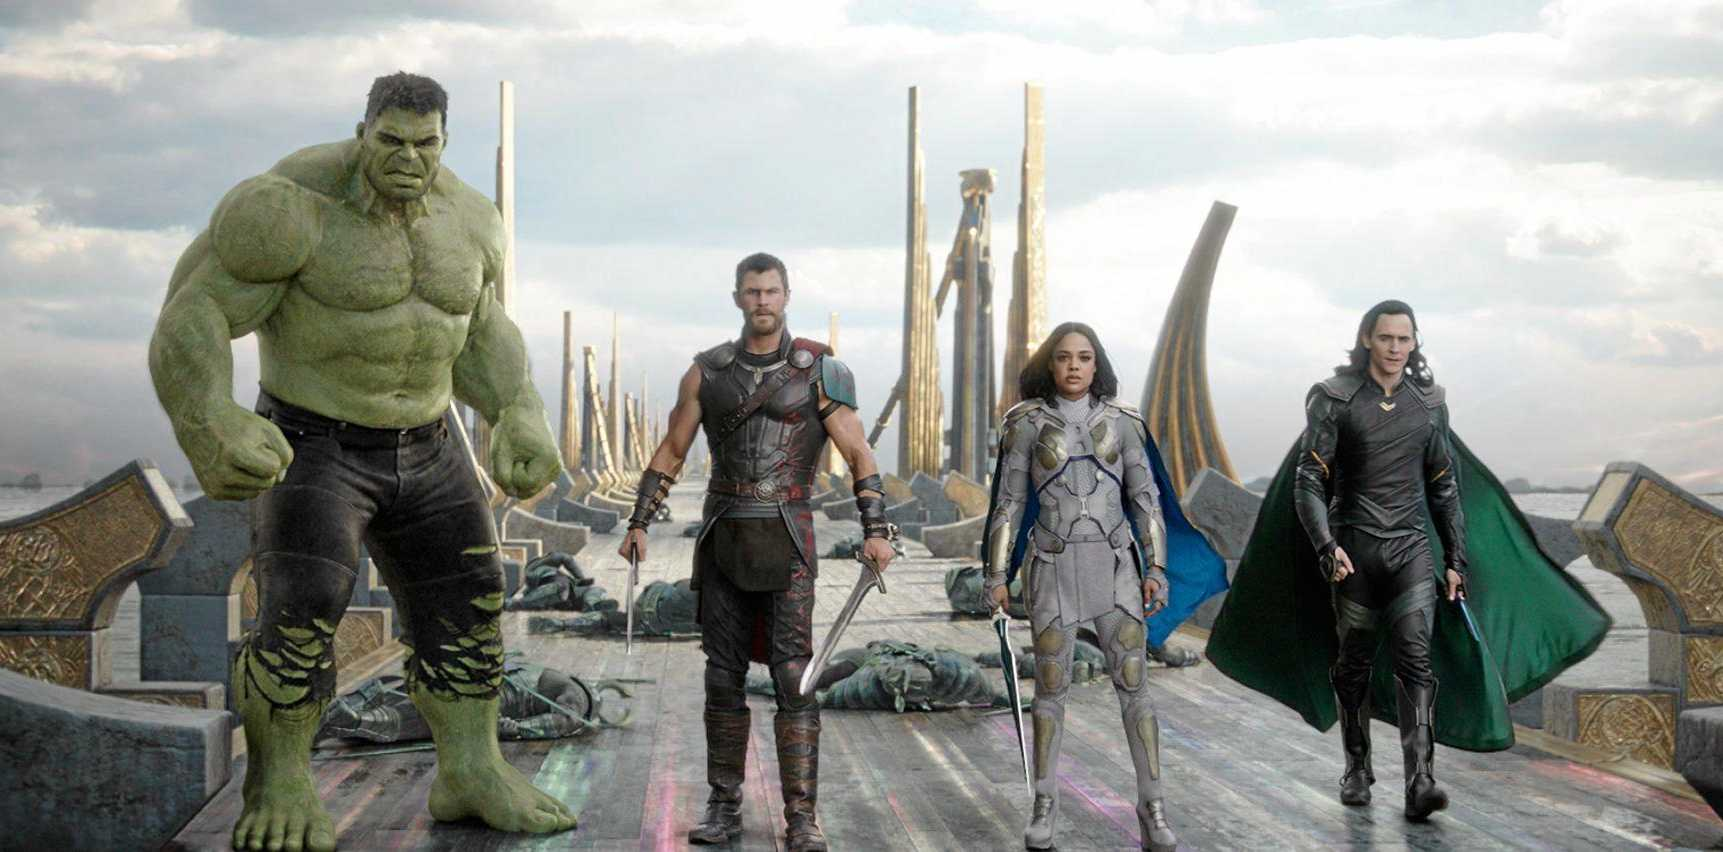 Mark Ruffalo (as Hulk), Chris Hemsworth, Tessa Thompson and Tom Hiddleston in a scene from the movie Thor: Ragnarok.  Supplied by Marvel.